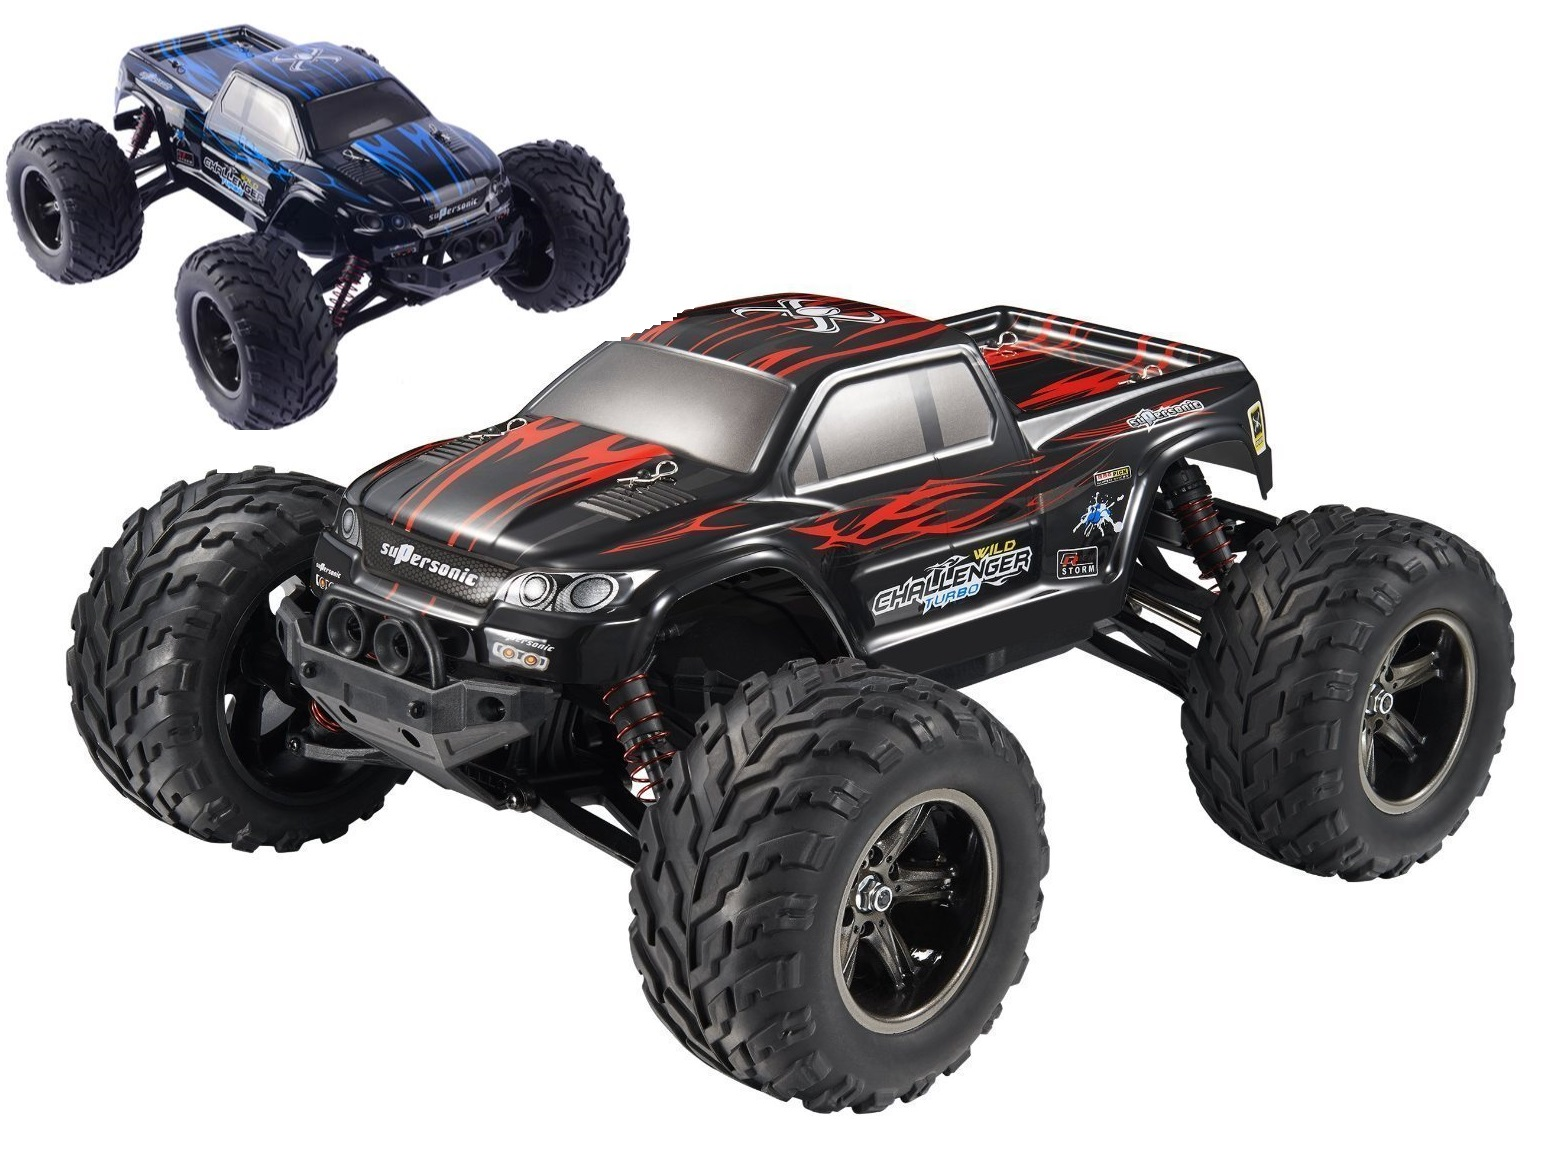 GPToys 9115 RC Car,RC monster Truck,High speed 1/12 1:12 Full-scale rc racing car,Shockproof